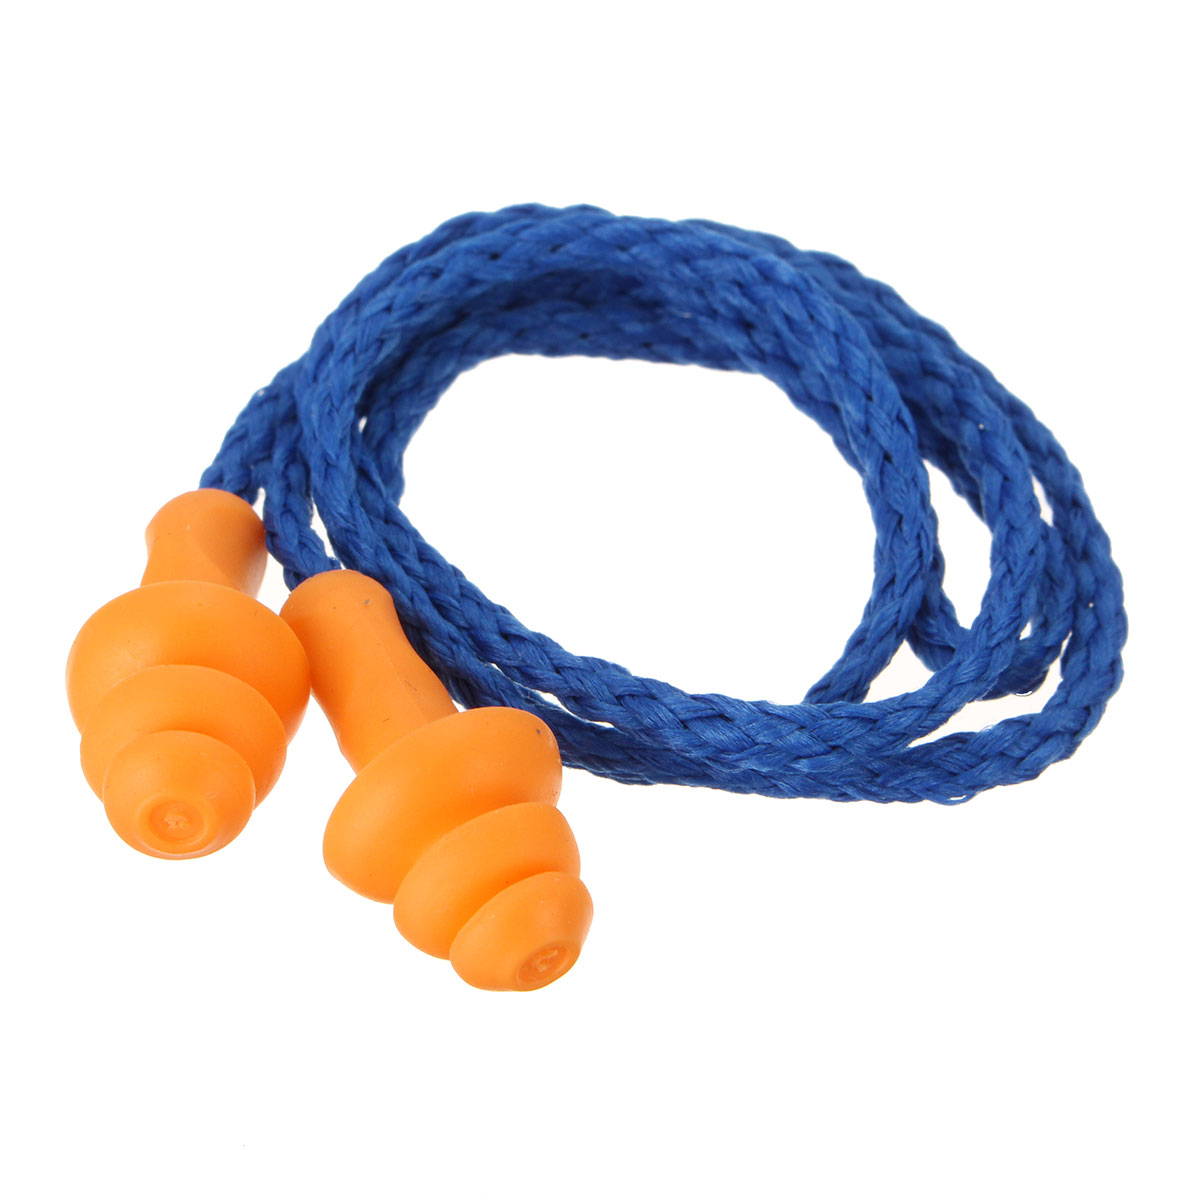 10pcs Soft Silicone Corded Ear Plugs Ears Protector